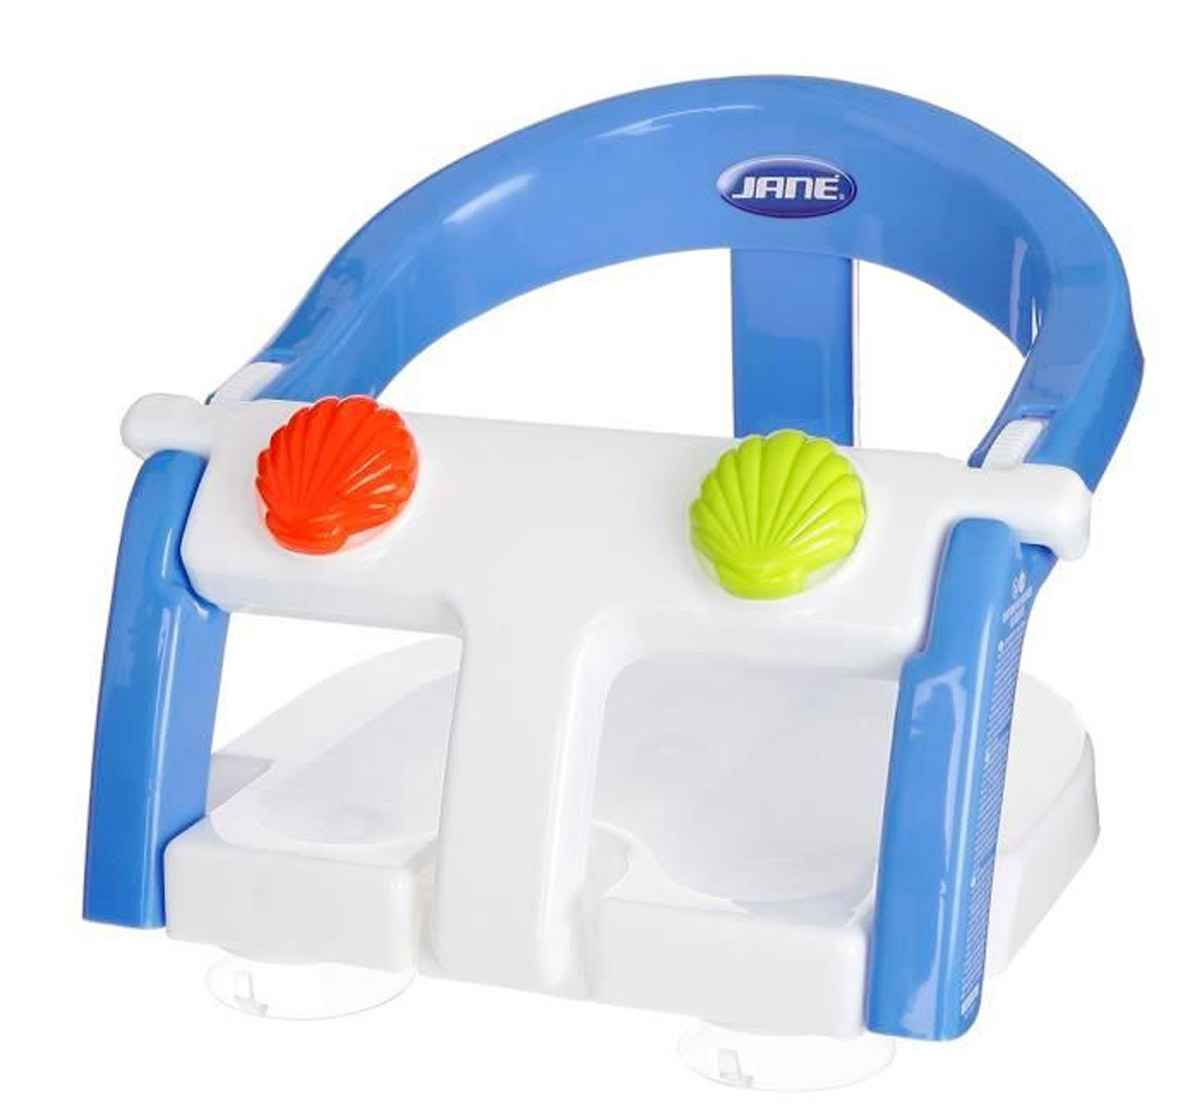 Fluid Bath Ring Seat, Blue | Jane-uk.com